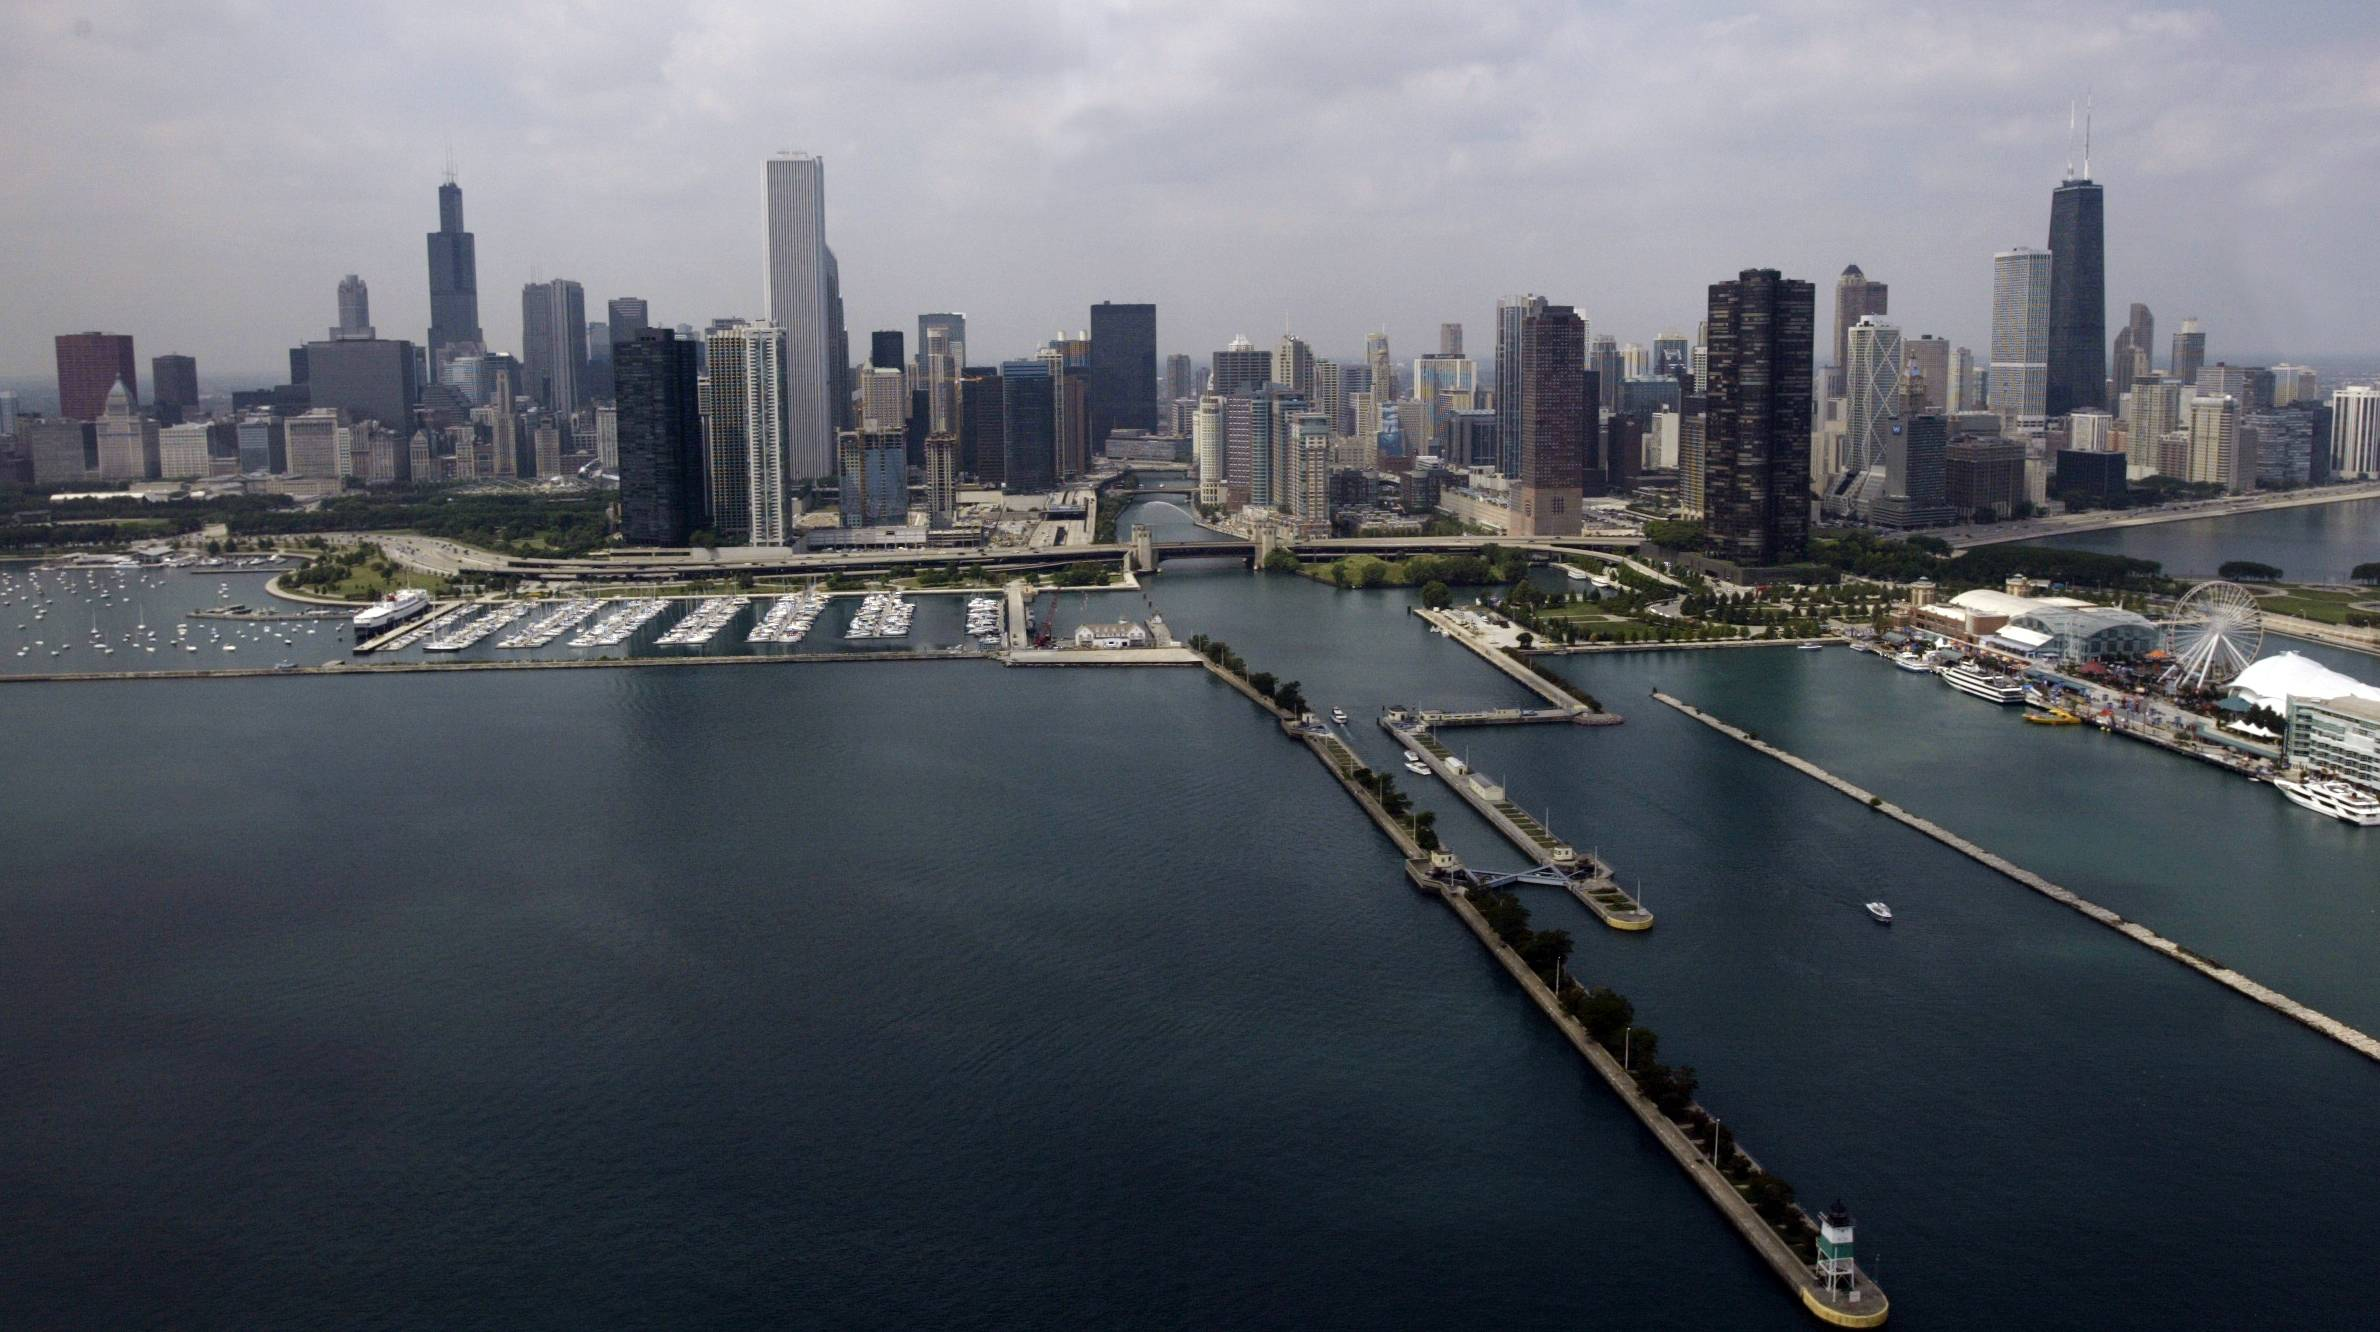 Moody's Investors Service has downgraded Chicago's credit rating, citing the city's unfunded pension liabilities.